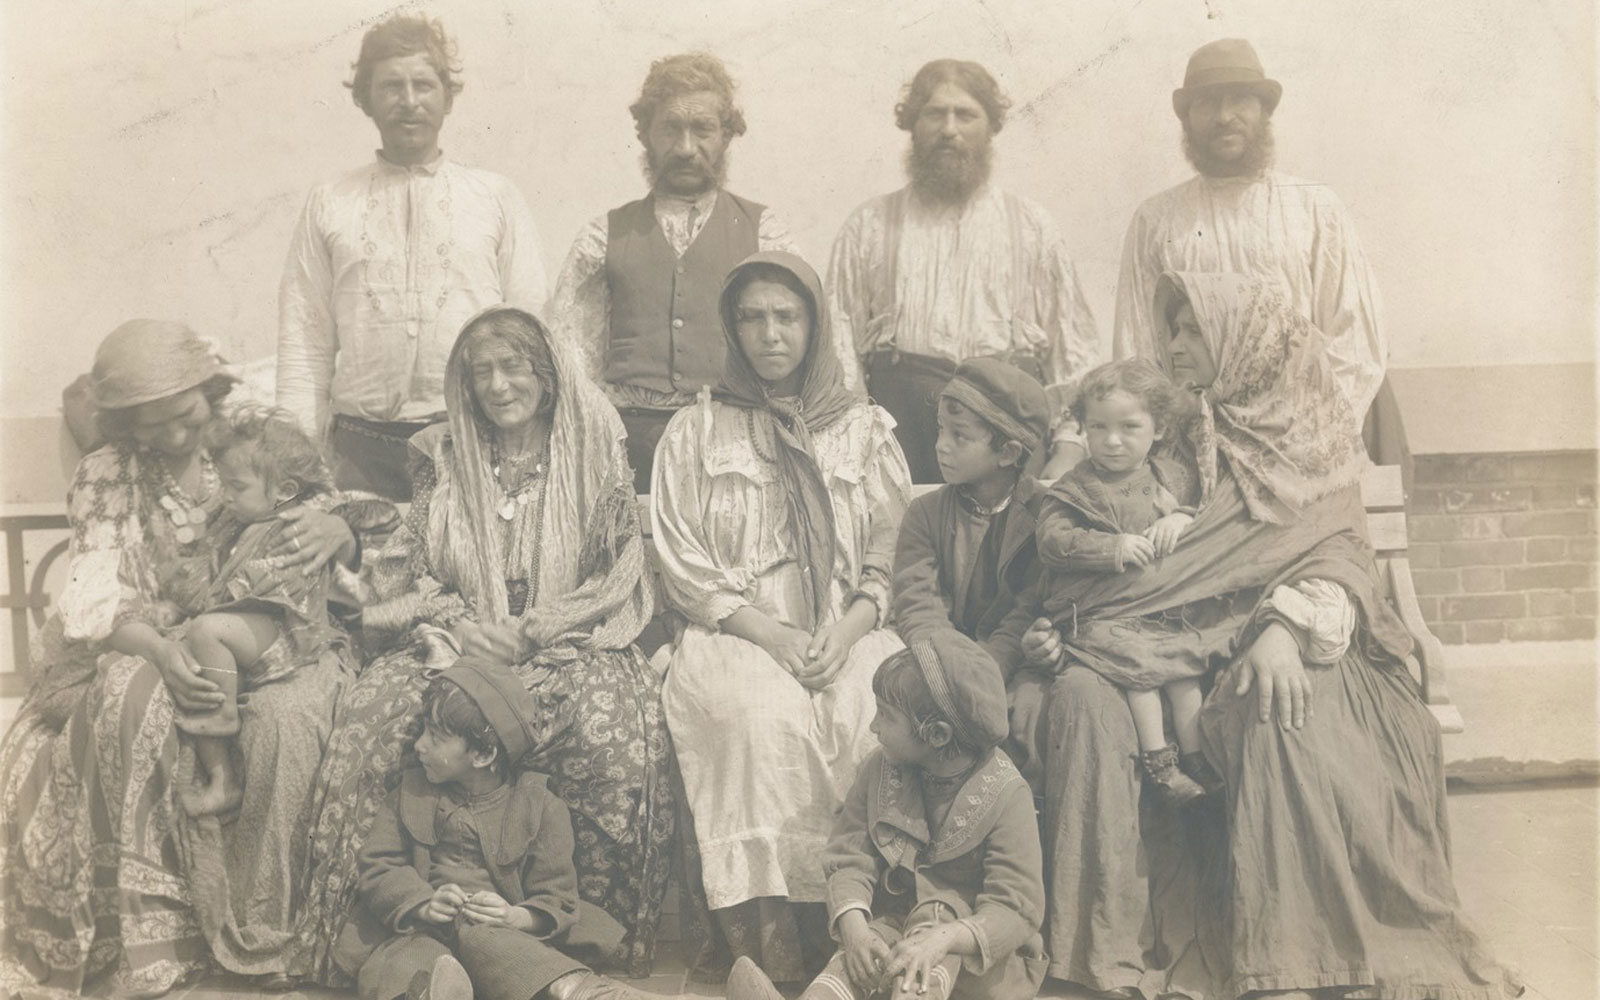 Ellis Island Photos, Gypsies